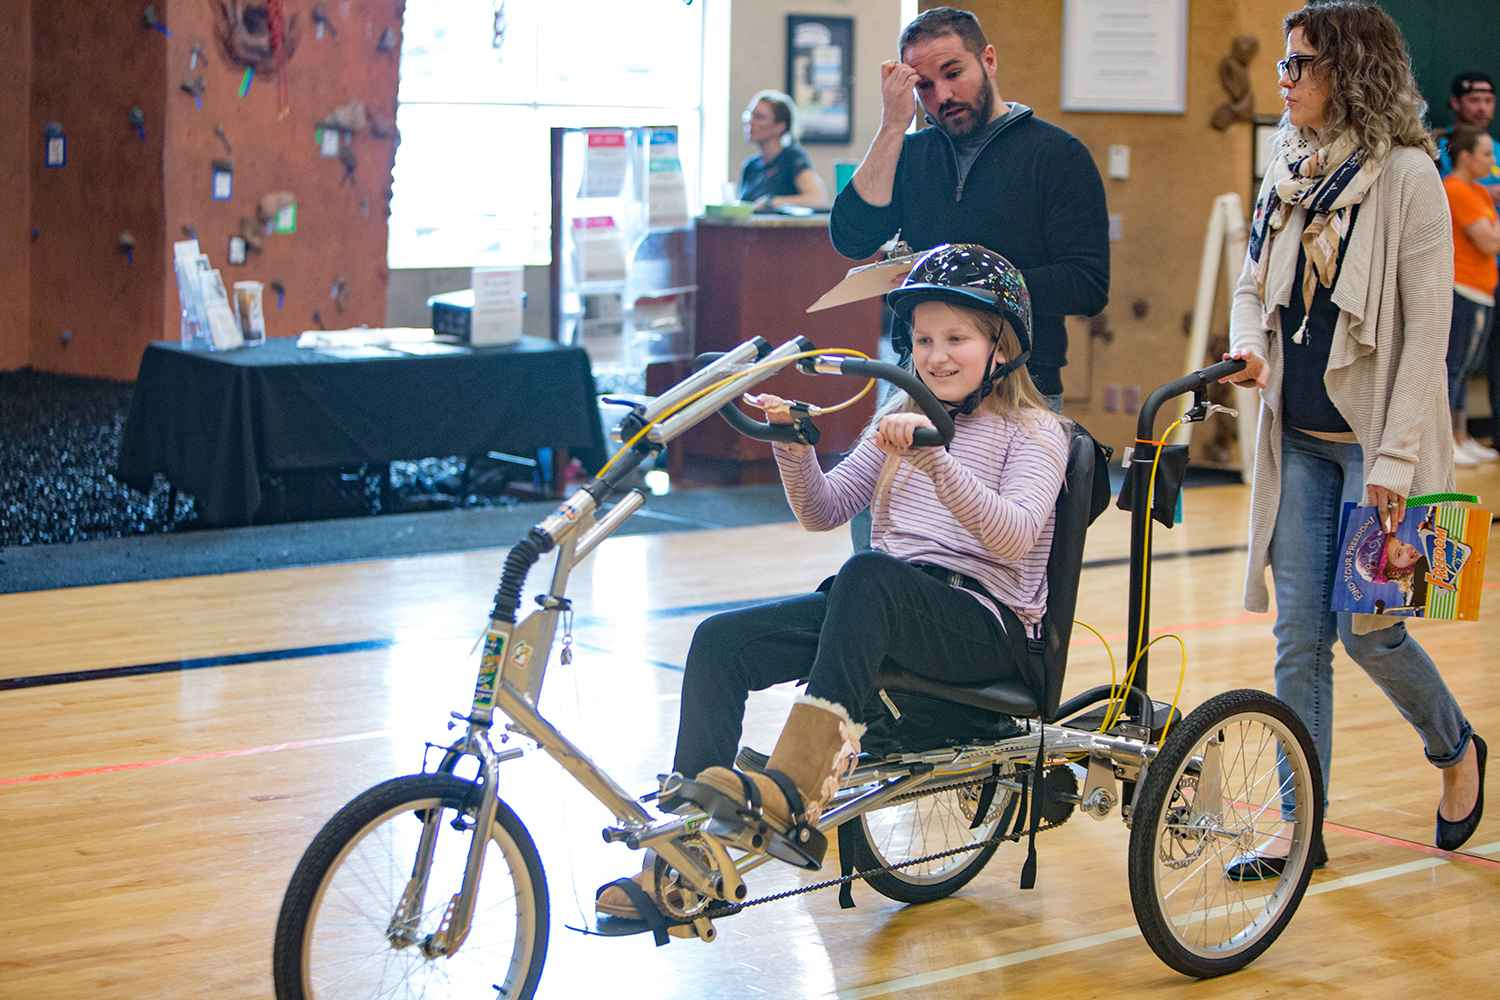 Kiara and her mom consider the adapted bike after a test ride.